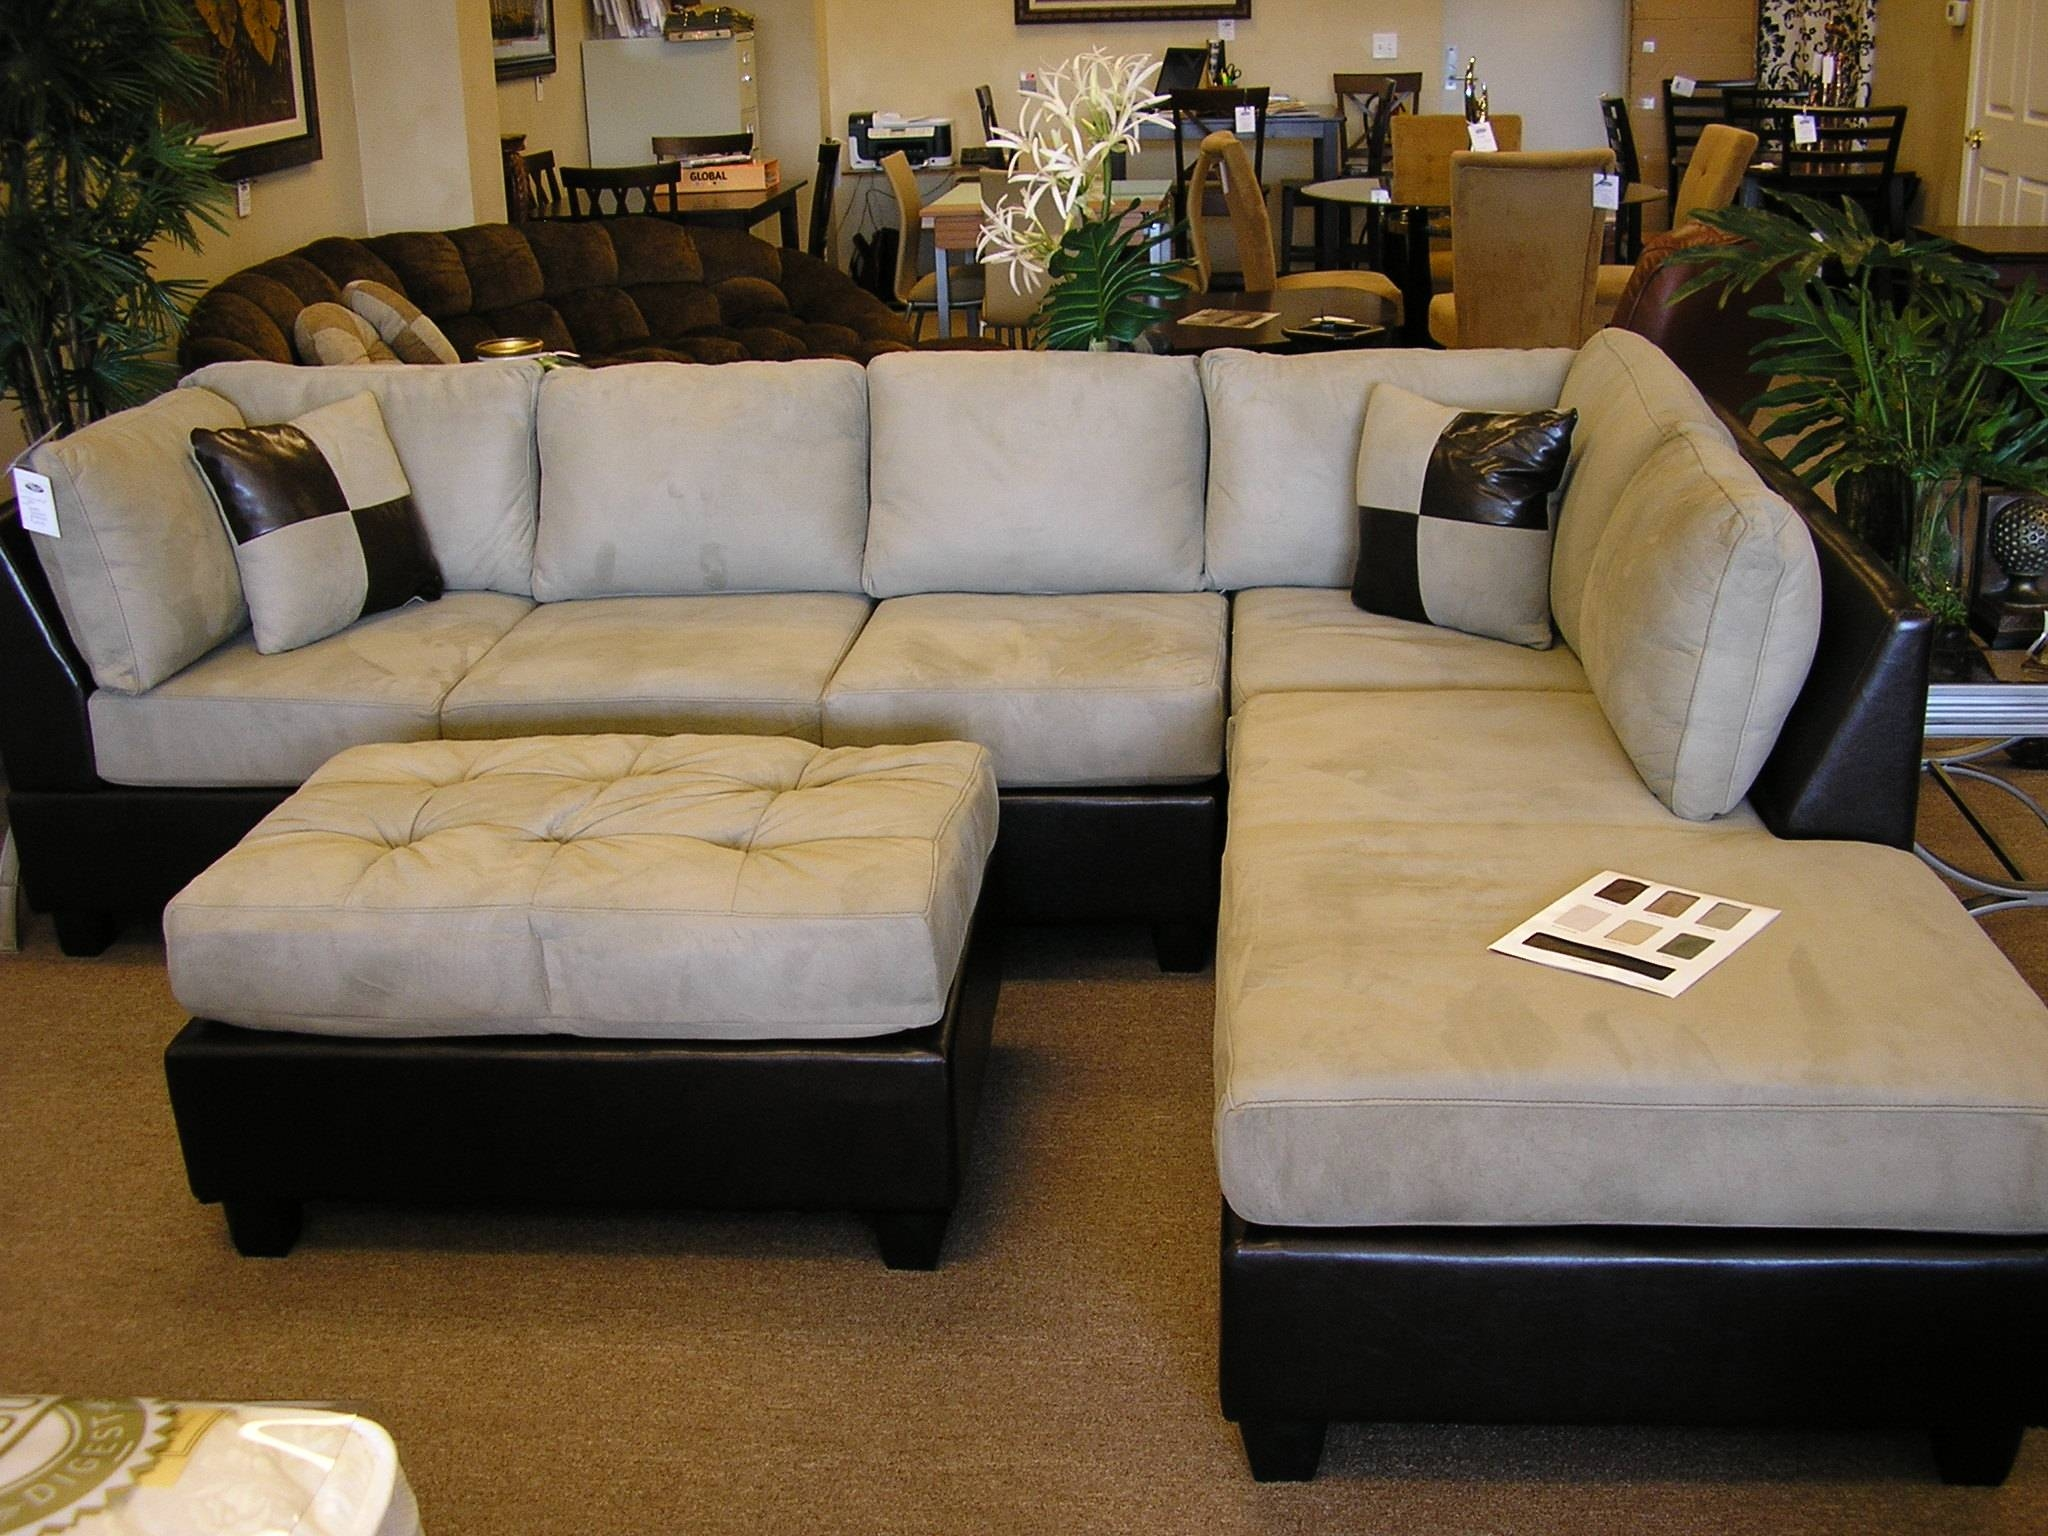 Furniture: Beautiful Sectional Sofas Cheap For Living Room intended for Tufted Sectional Sofa Chaise (Image 4 of 25)